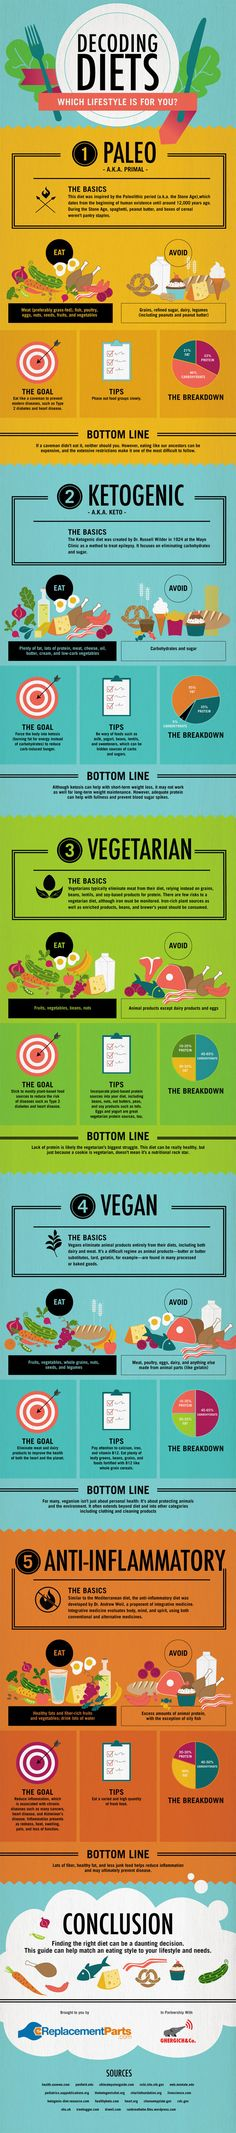 Infographic: Decoding Diets: Which Lifestyle is Right for You? #infographic